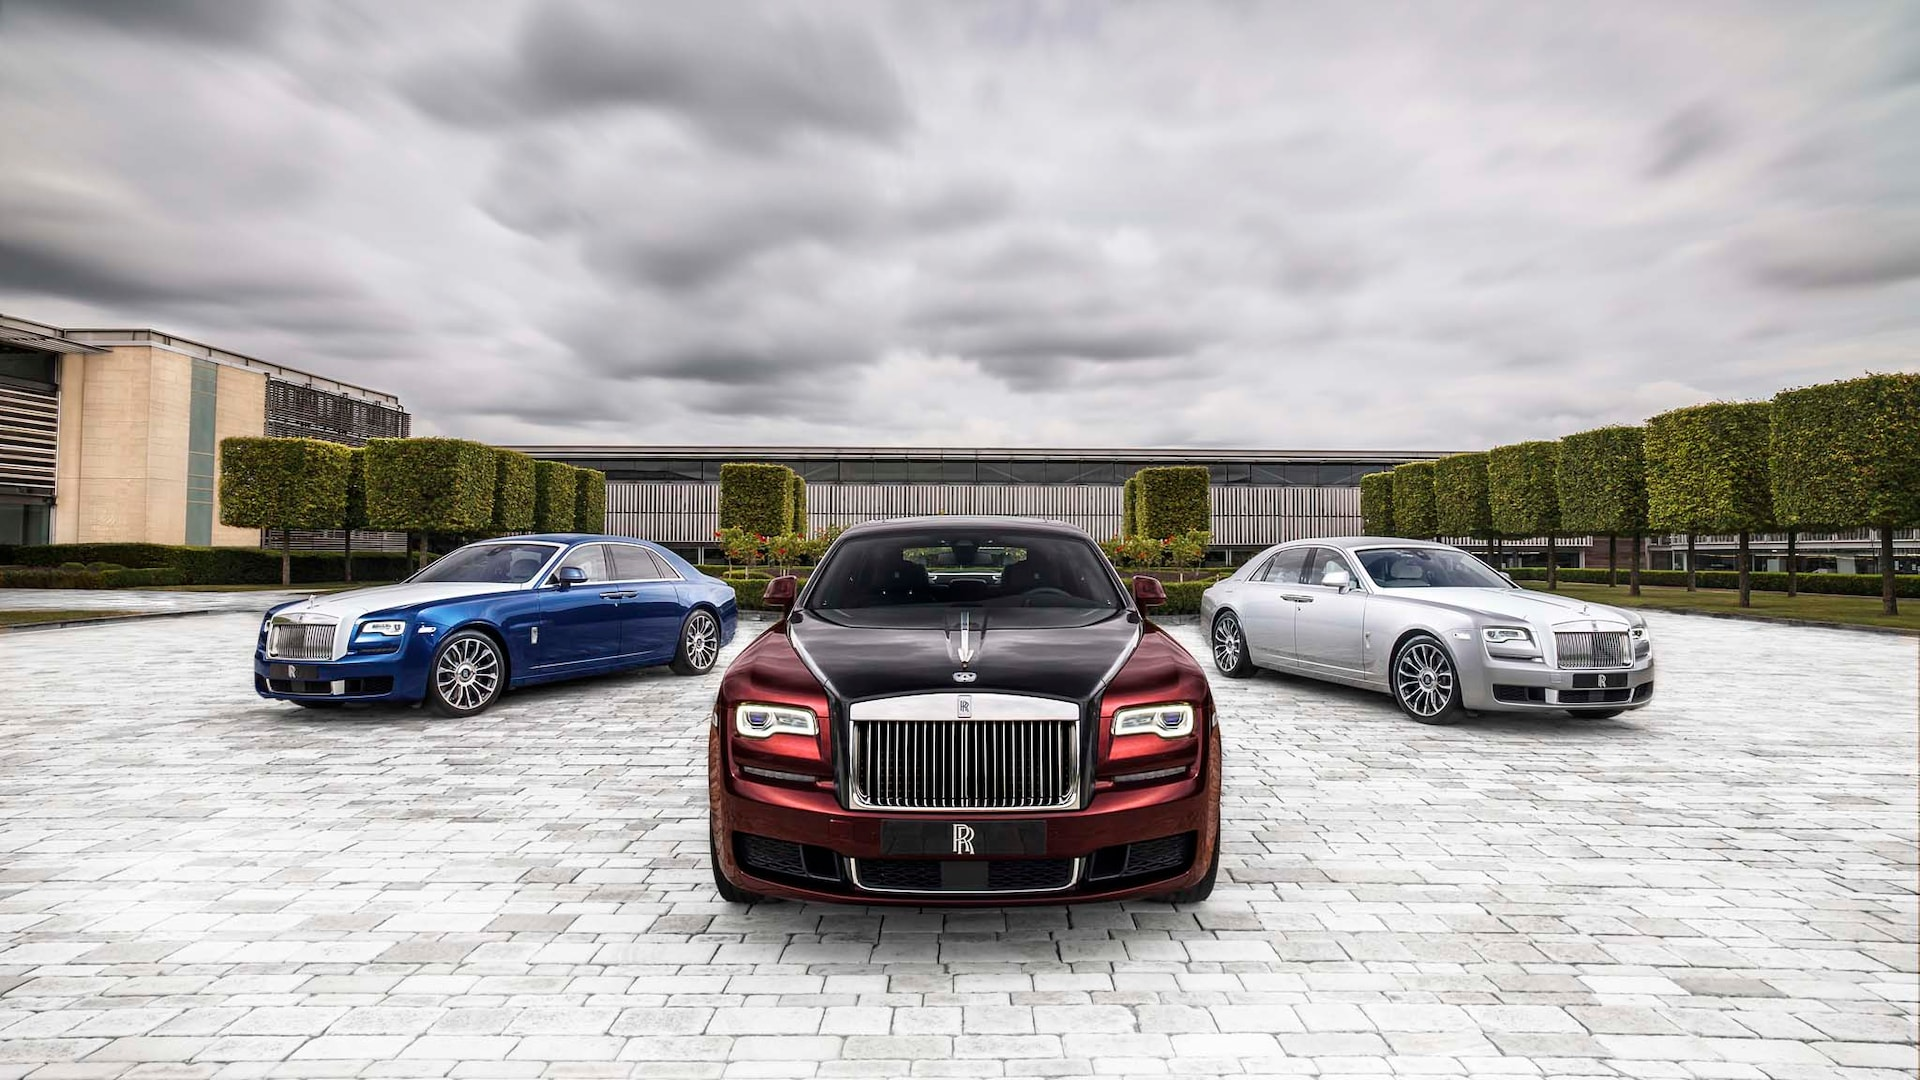 Learn more about price, engine type, mpg, and complete safety and warranty information. 2020 Rolls Royce Ghost Buyer S Guide Reviews Specs Comparisons